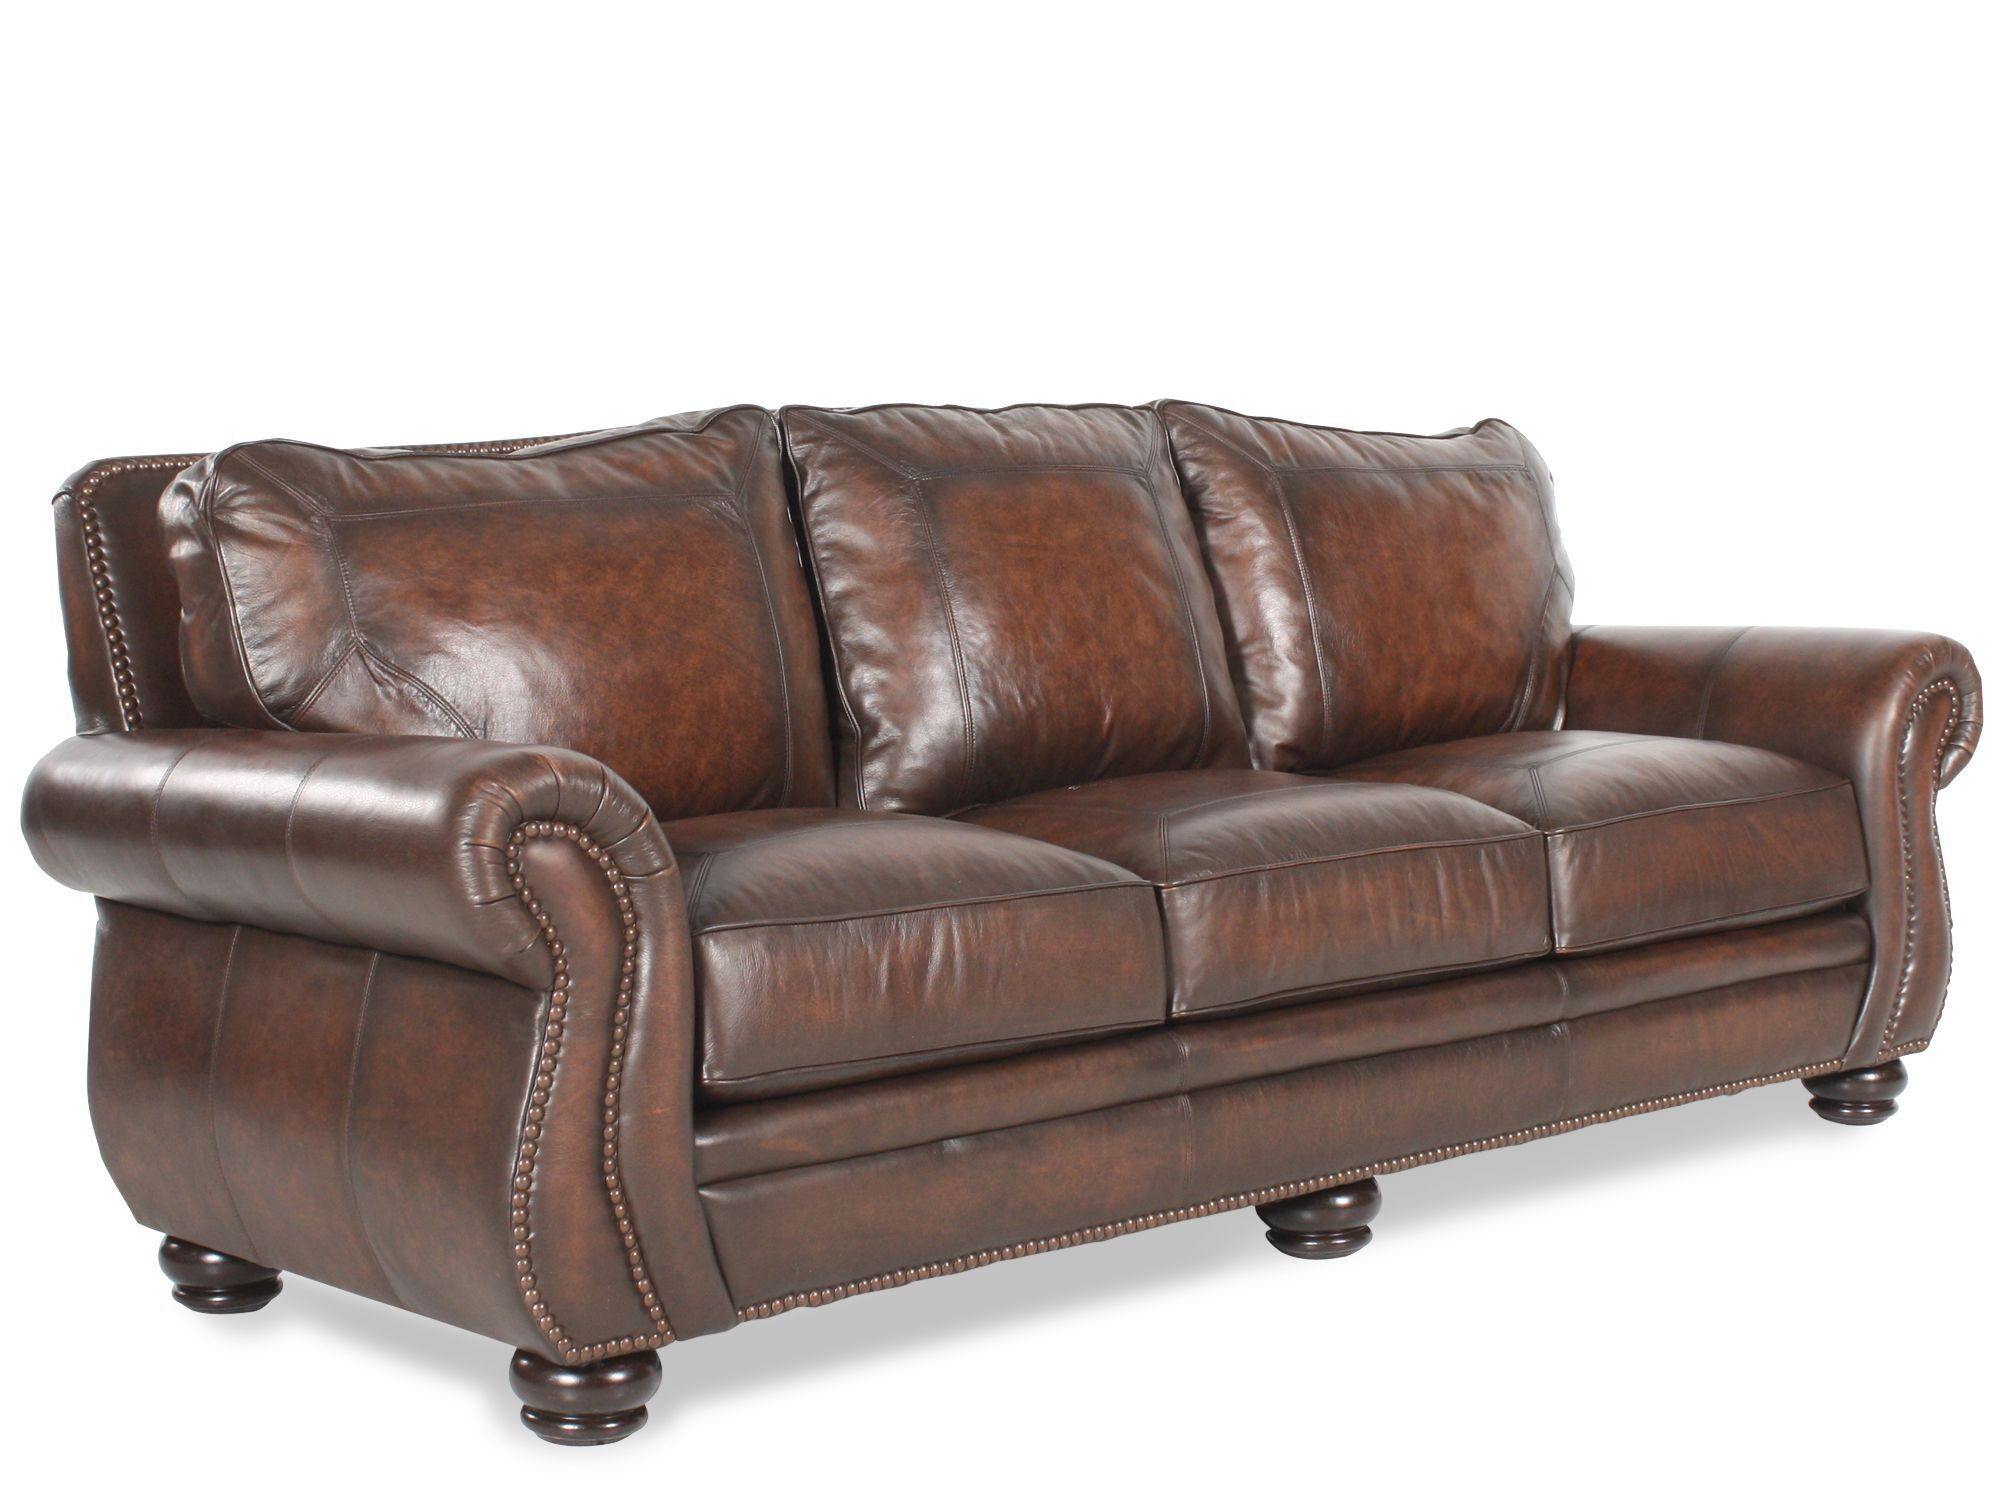 bernhardt leather sofa cushion replacement indoor outdoor sleeper breckenridge hemispheres furniture